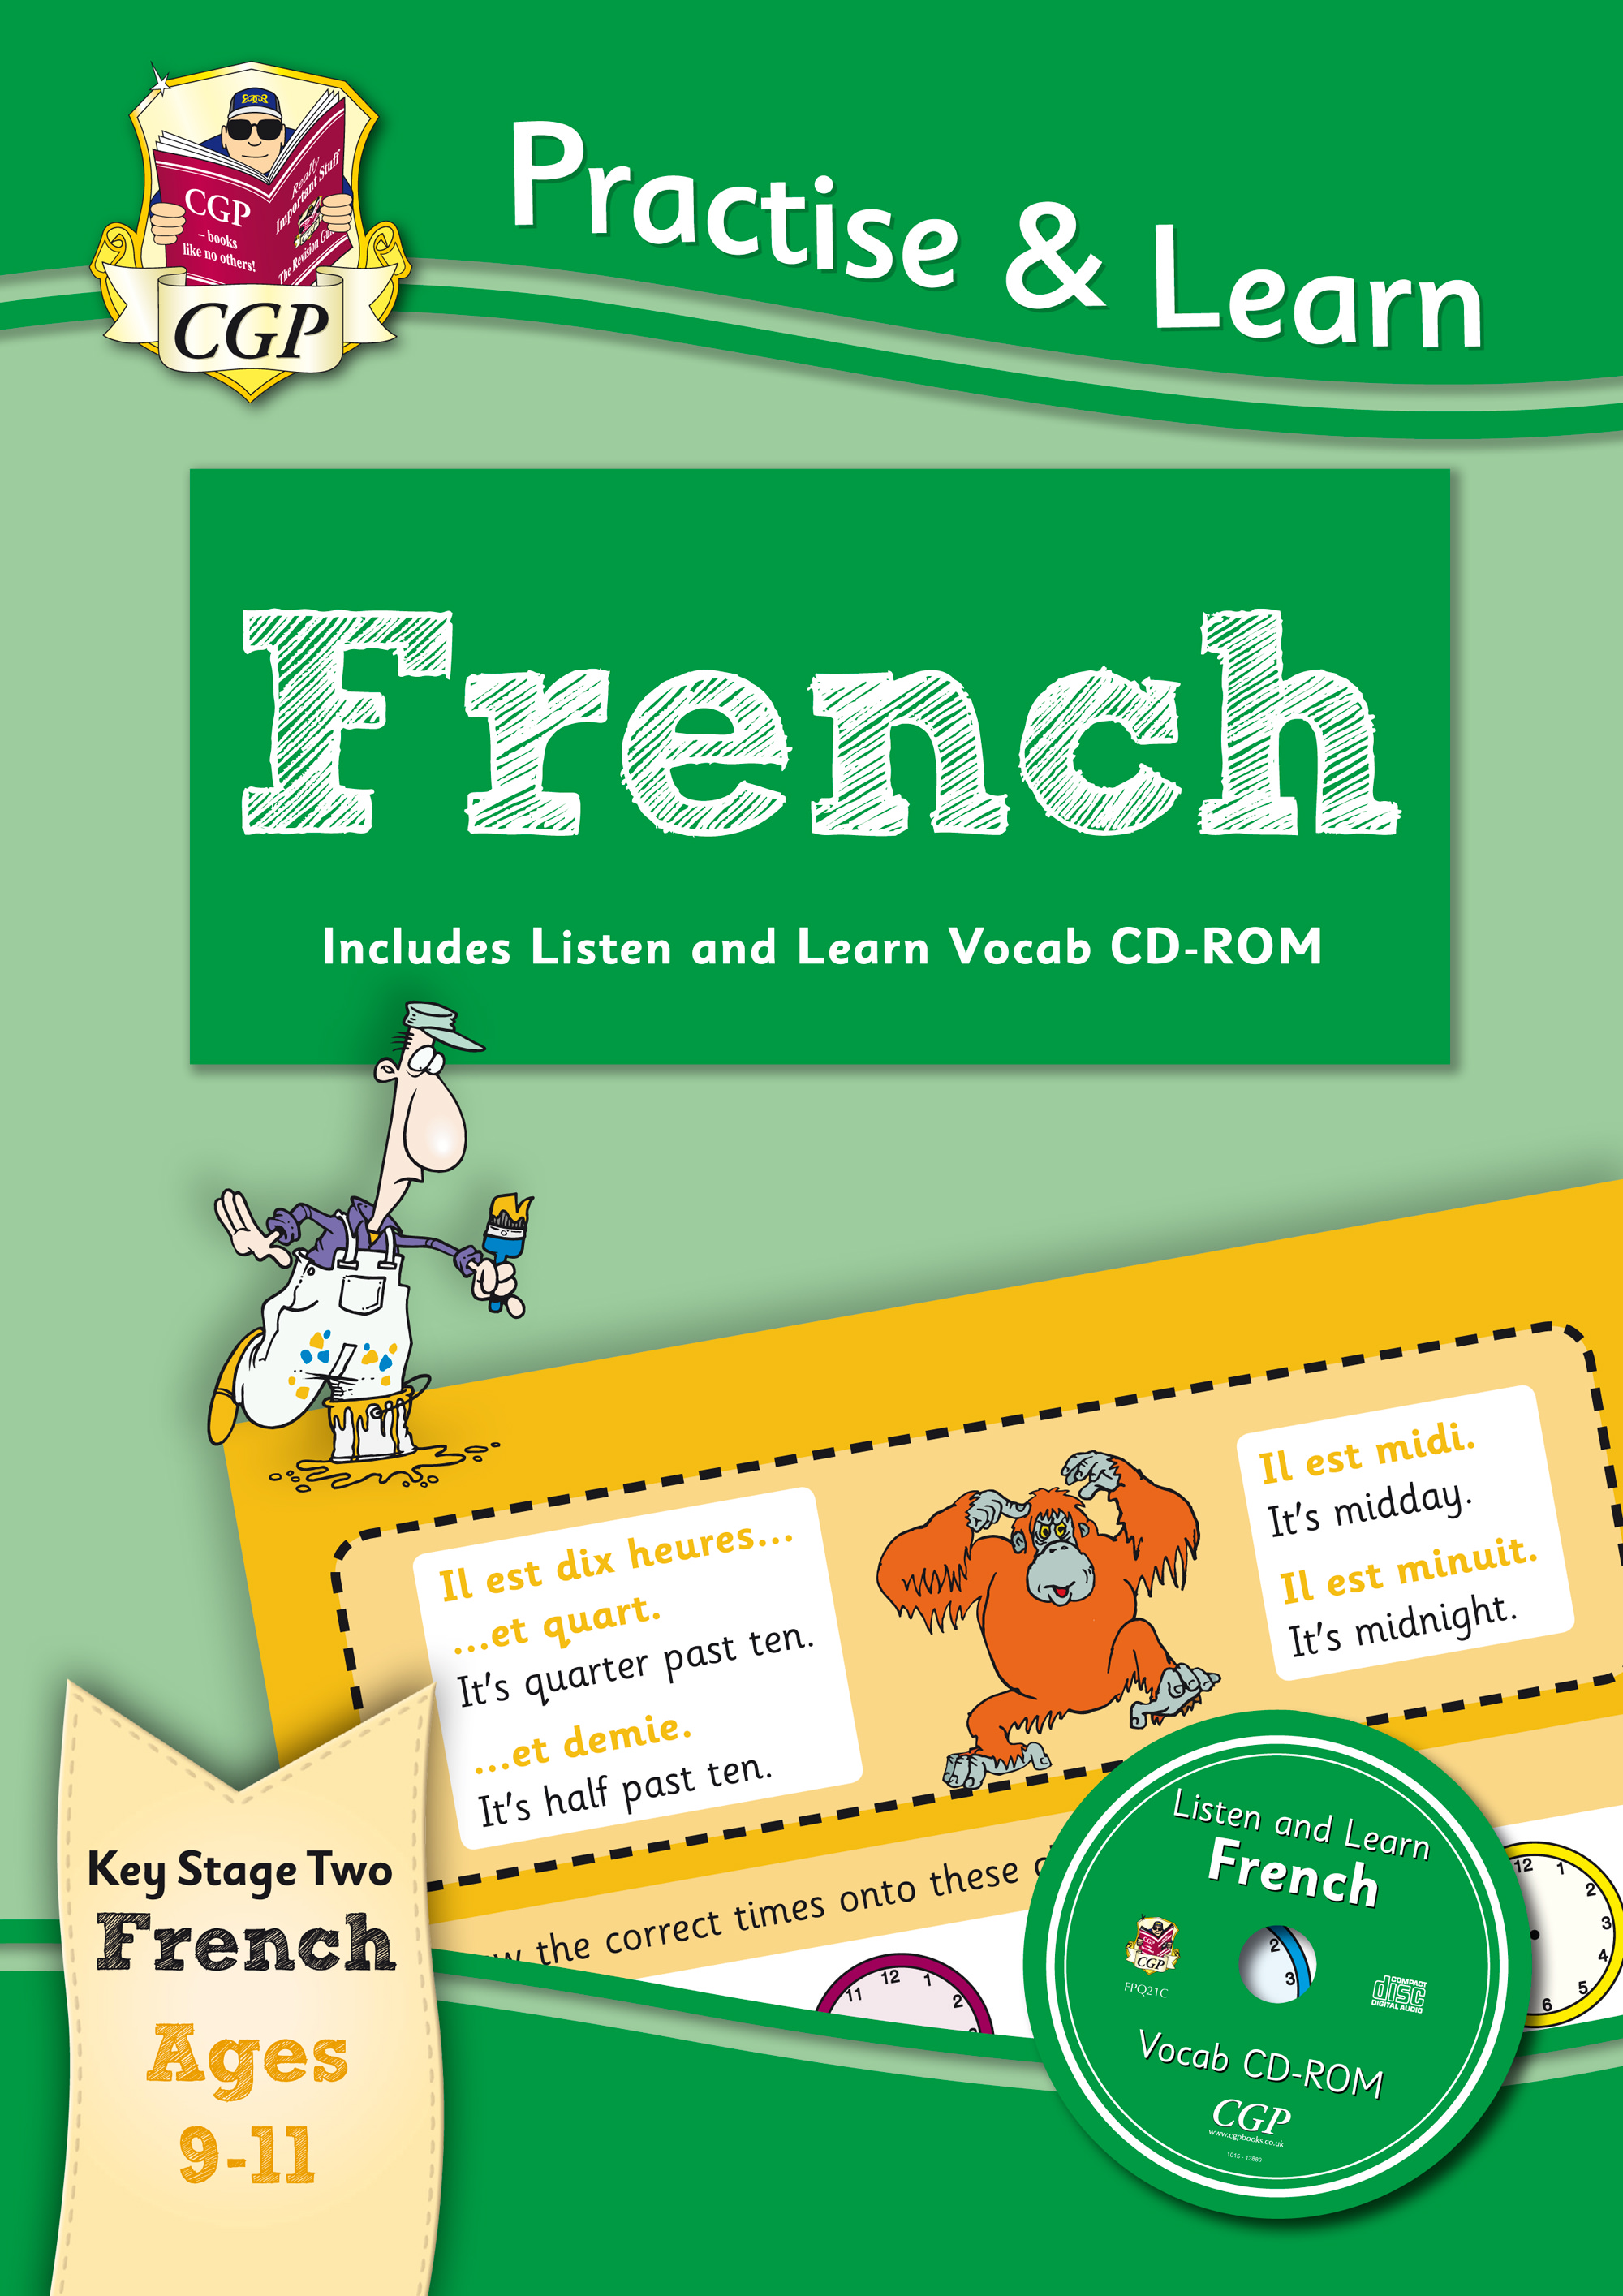 FP6Q22 - New Curriculum Practise & Learn: French for Ages 9-11 - with vocab CD-ROM